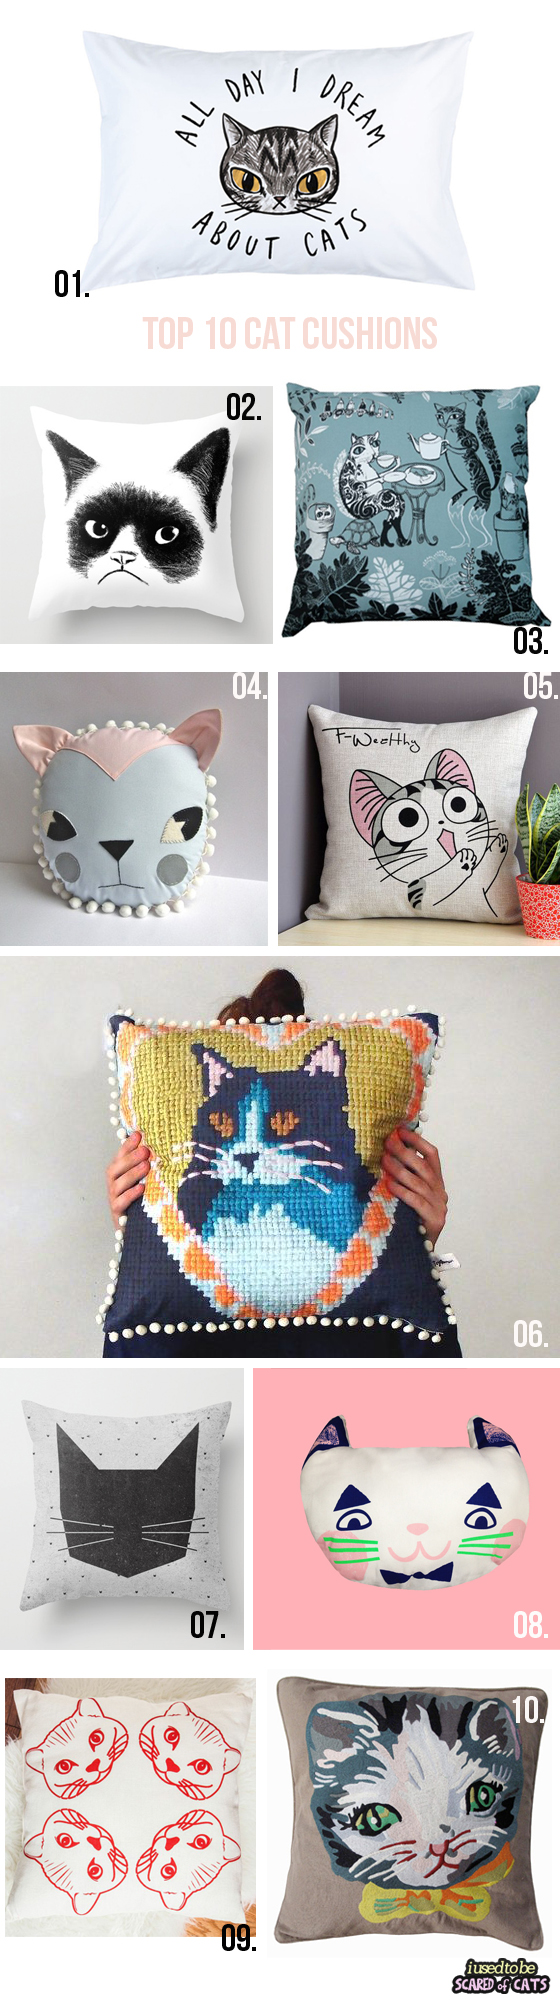 top 10 cat cushions